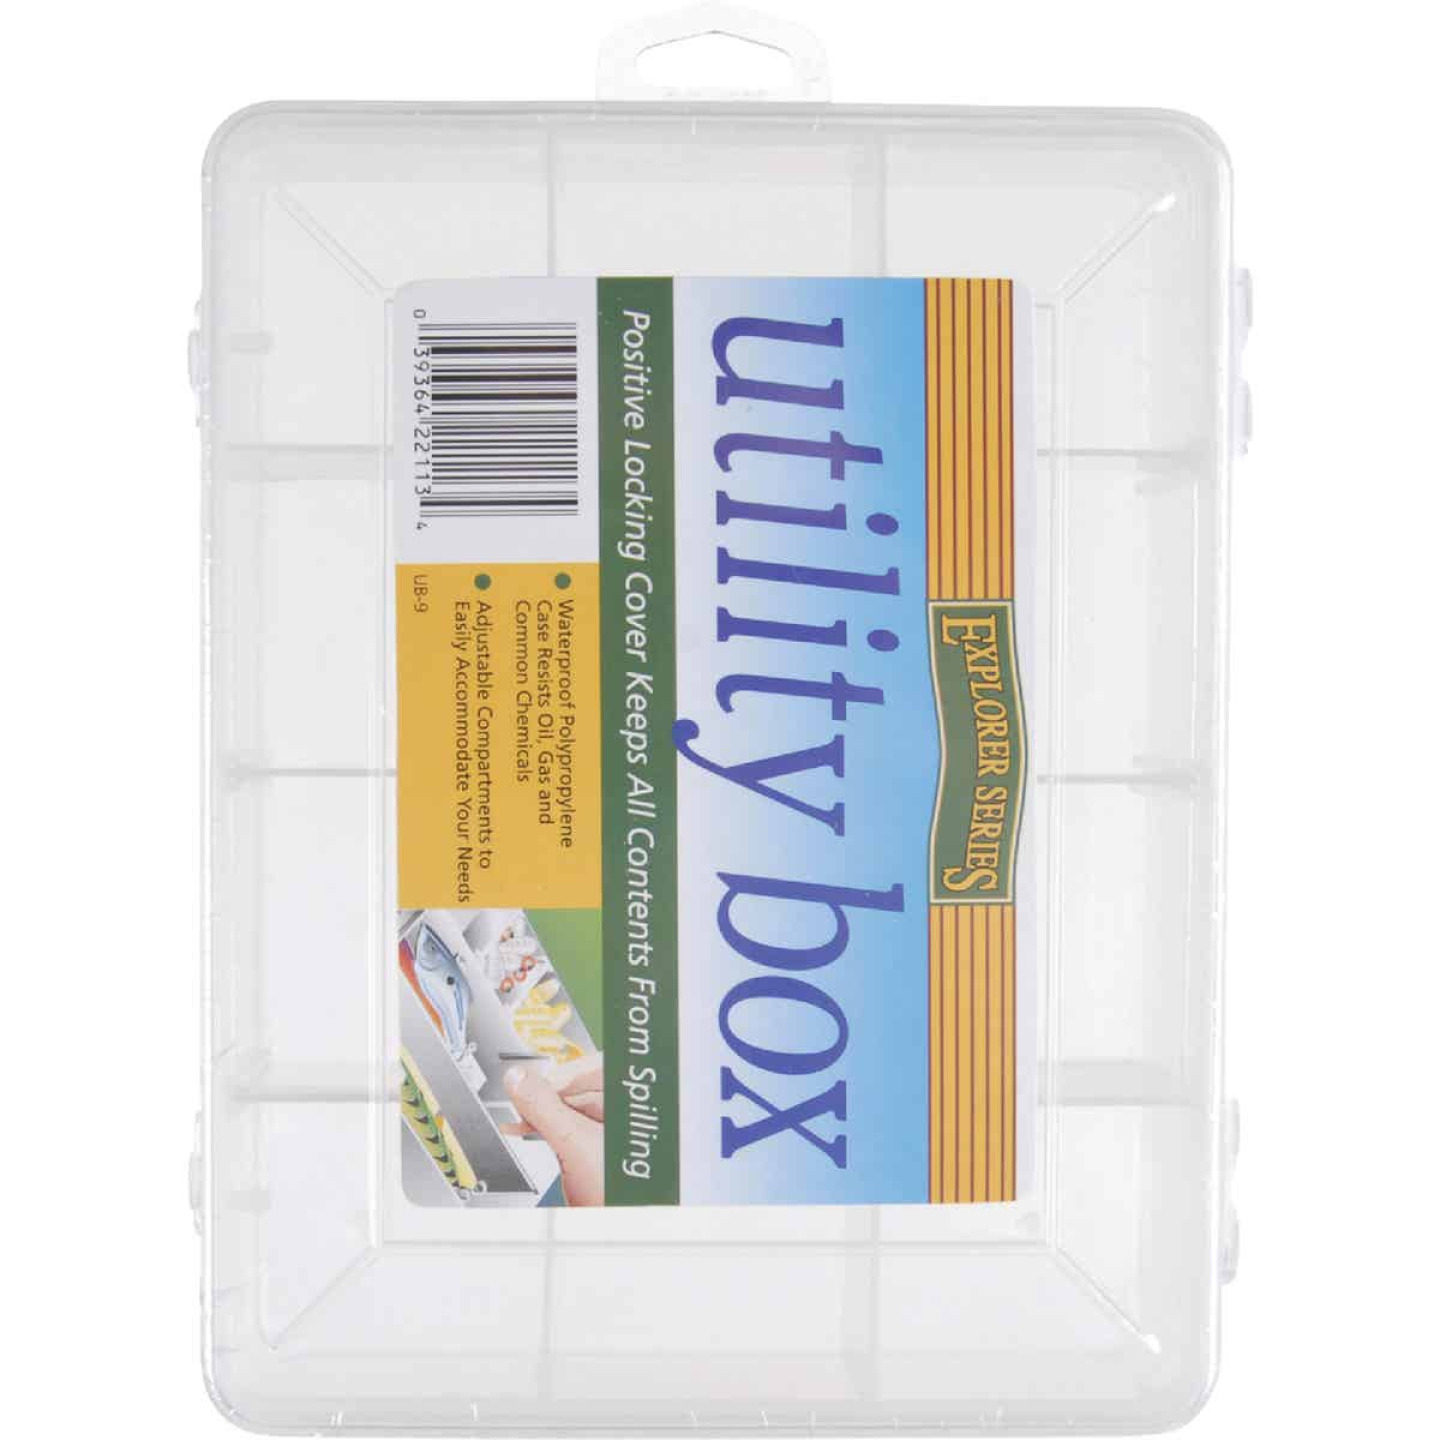 SouthBend 9-Compartment Tackle Box Image 1